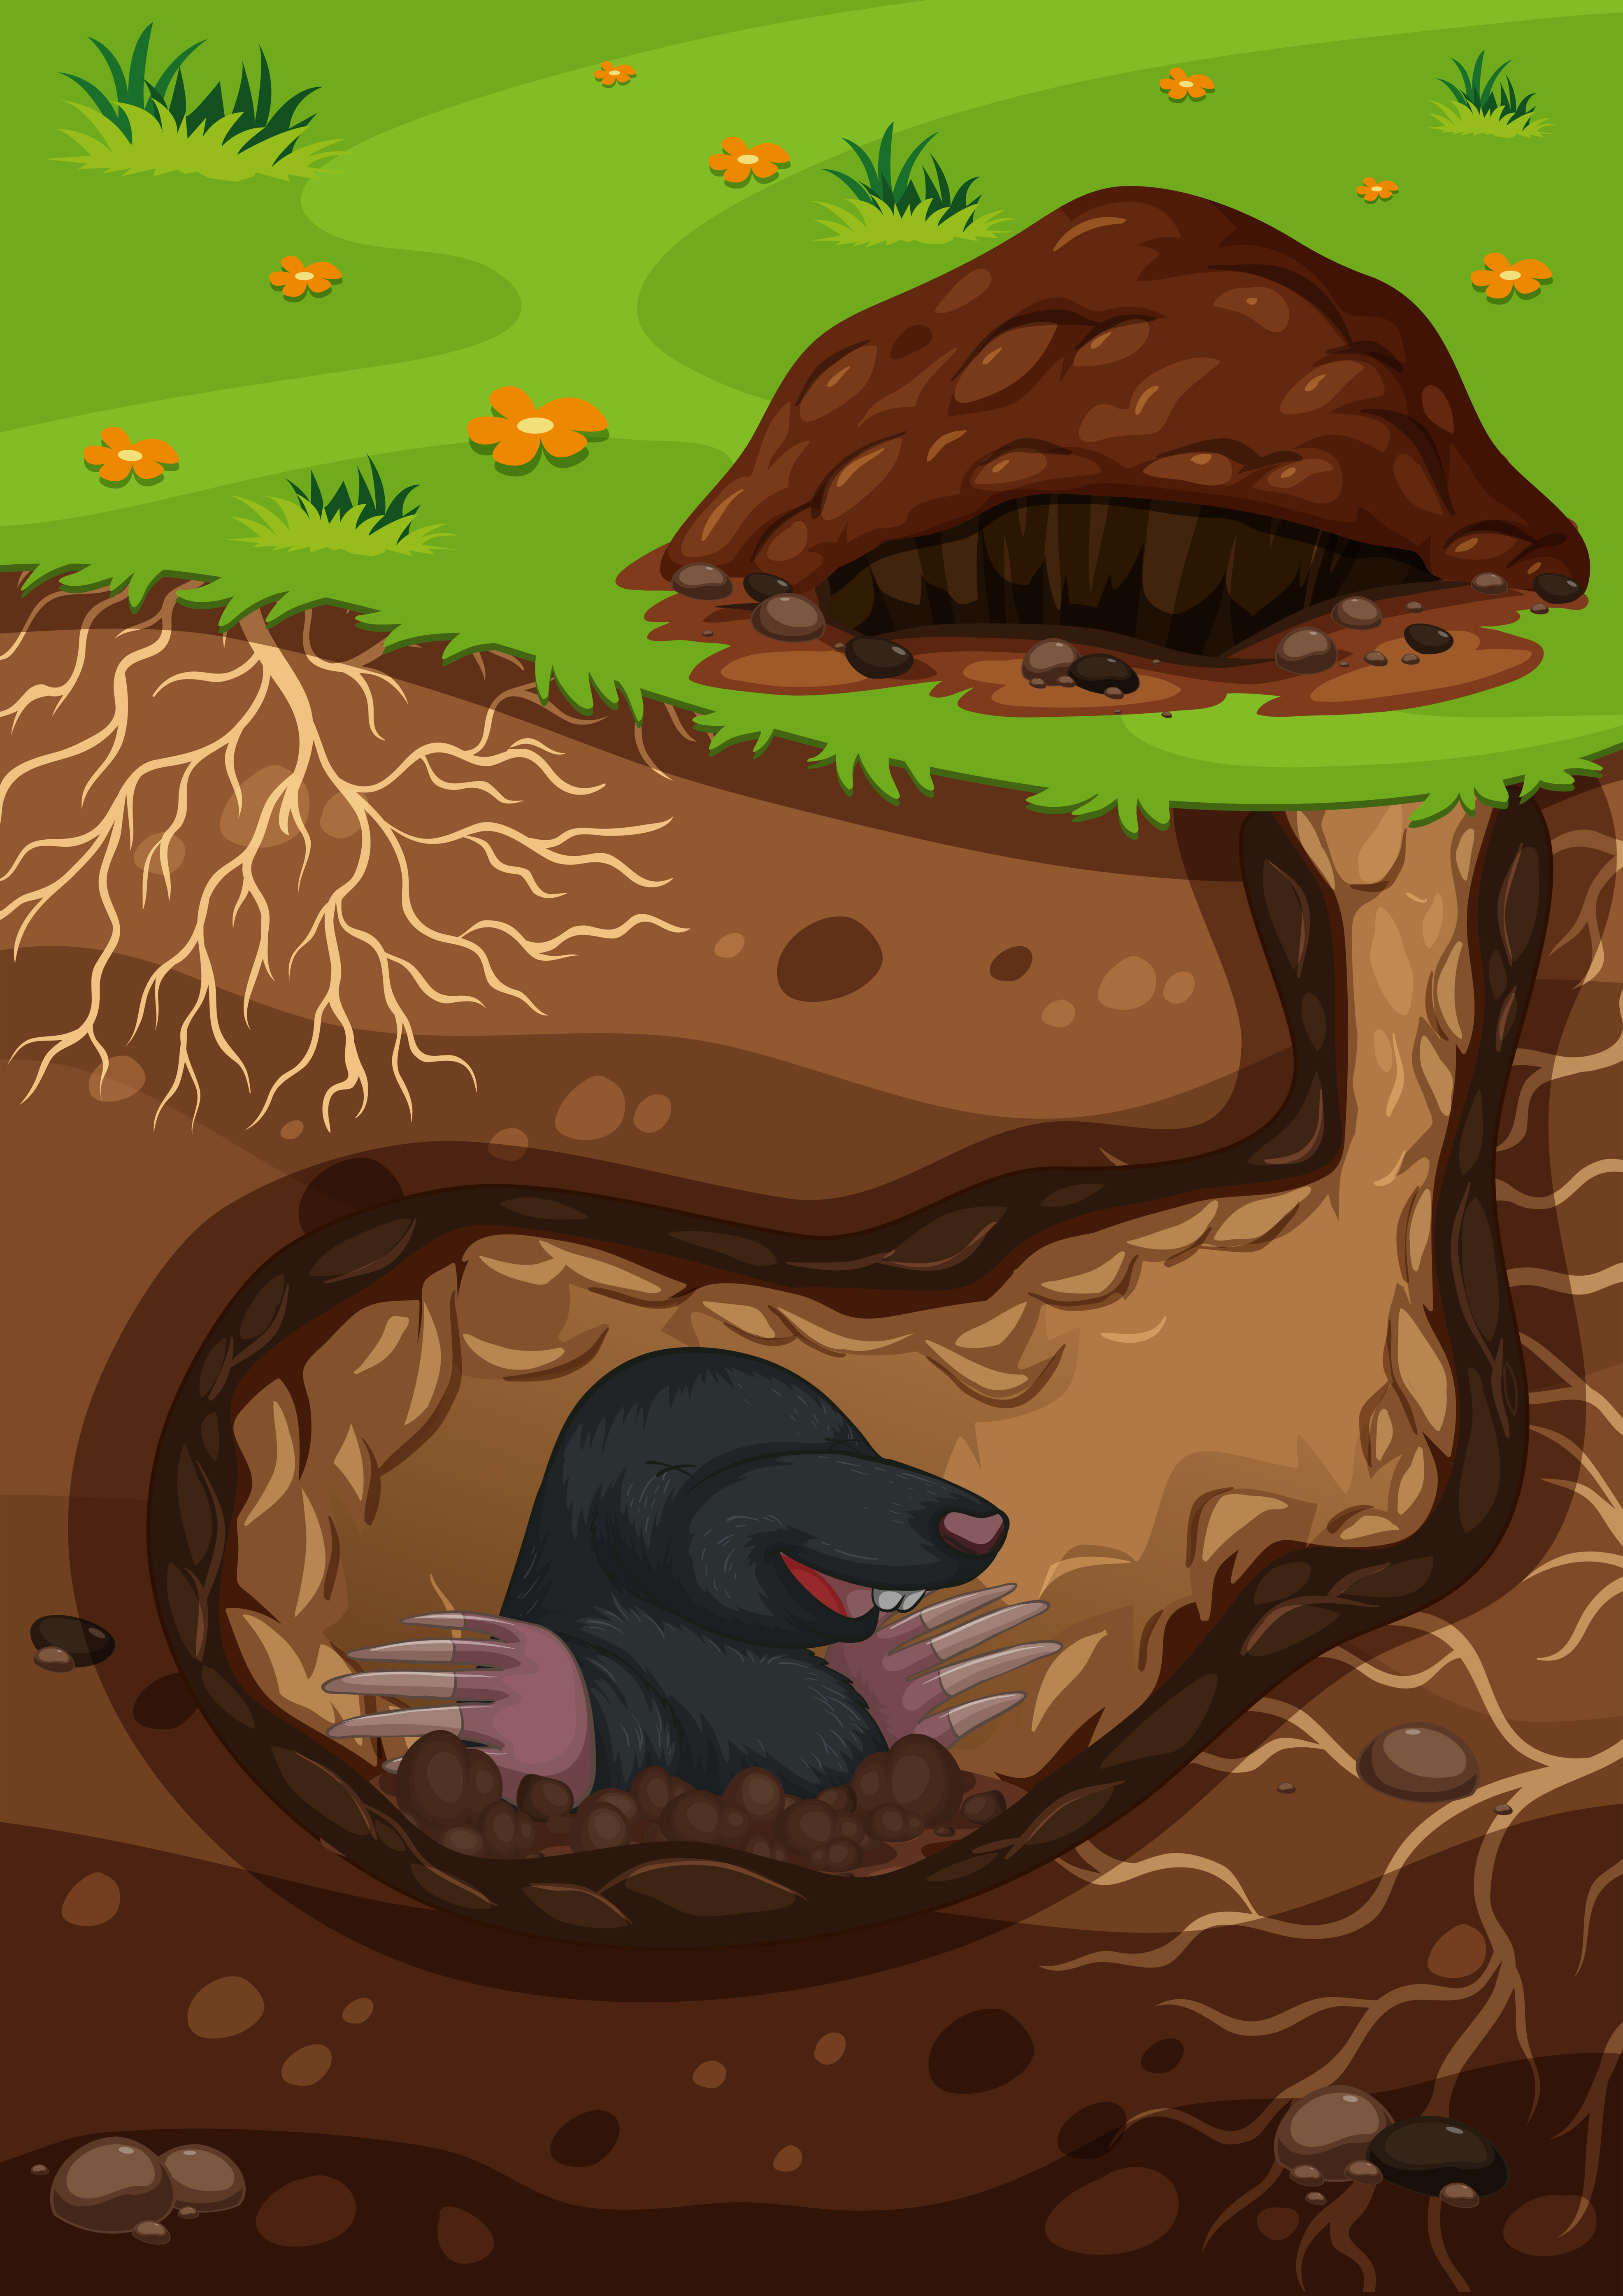 Underground mole in a tunnel - Download Free Vectors ...